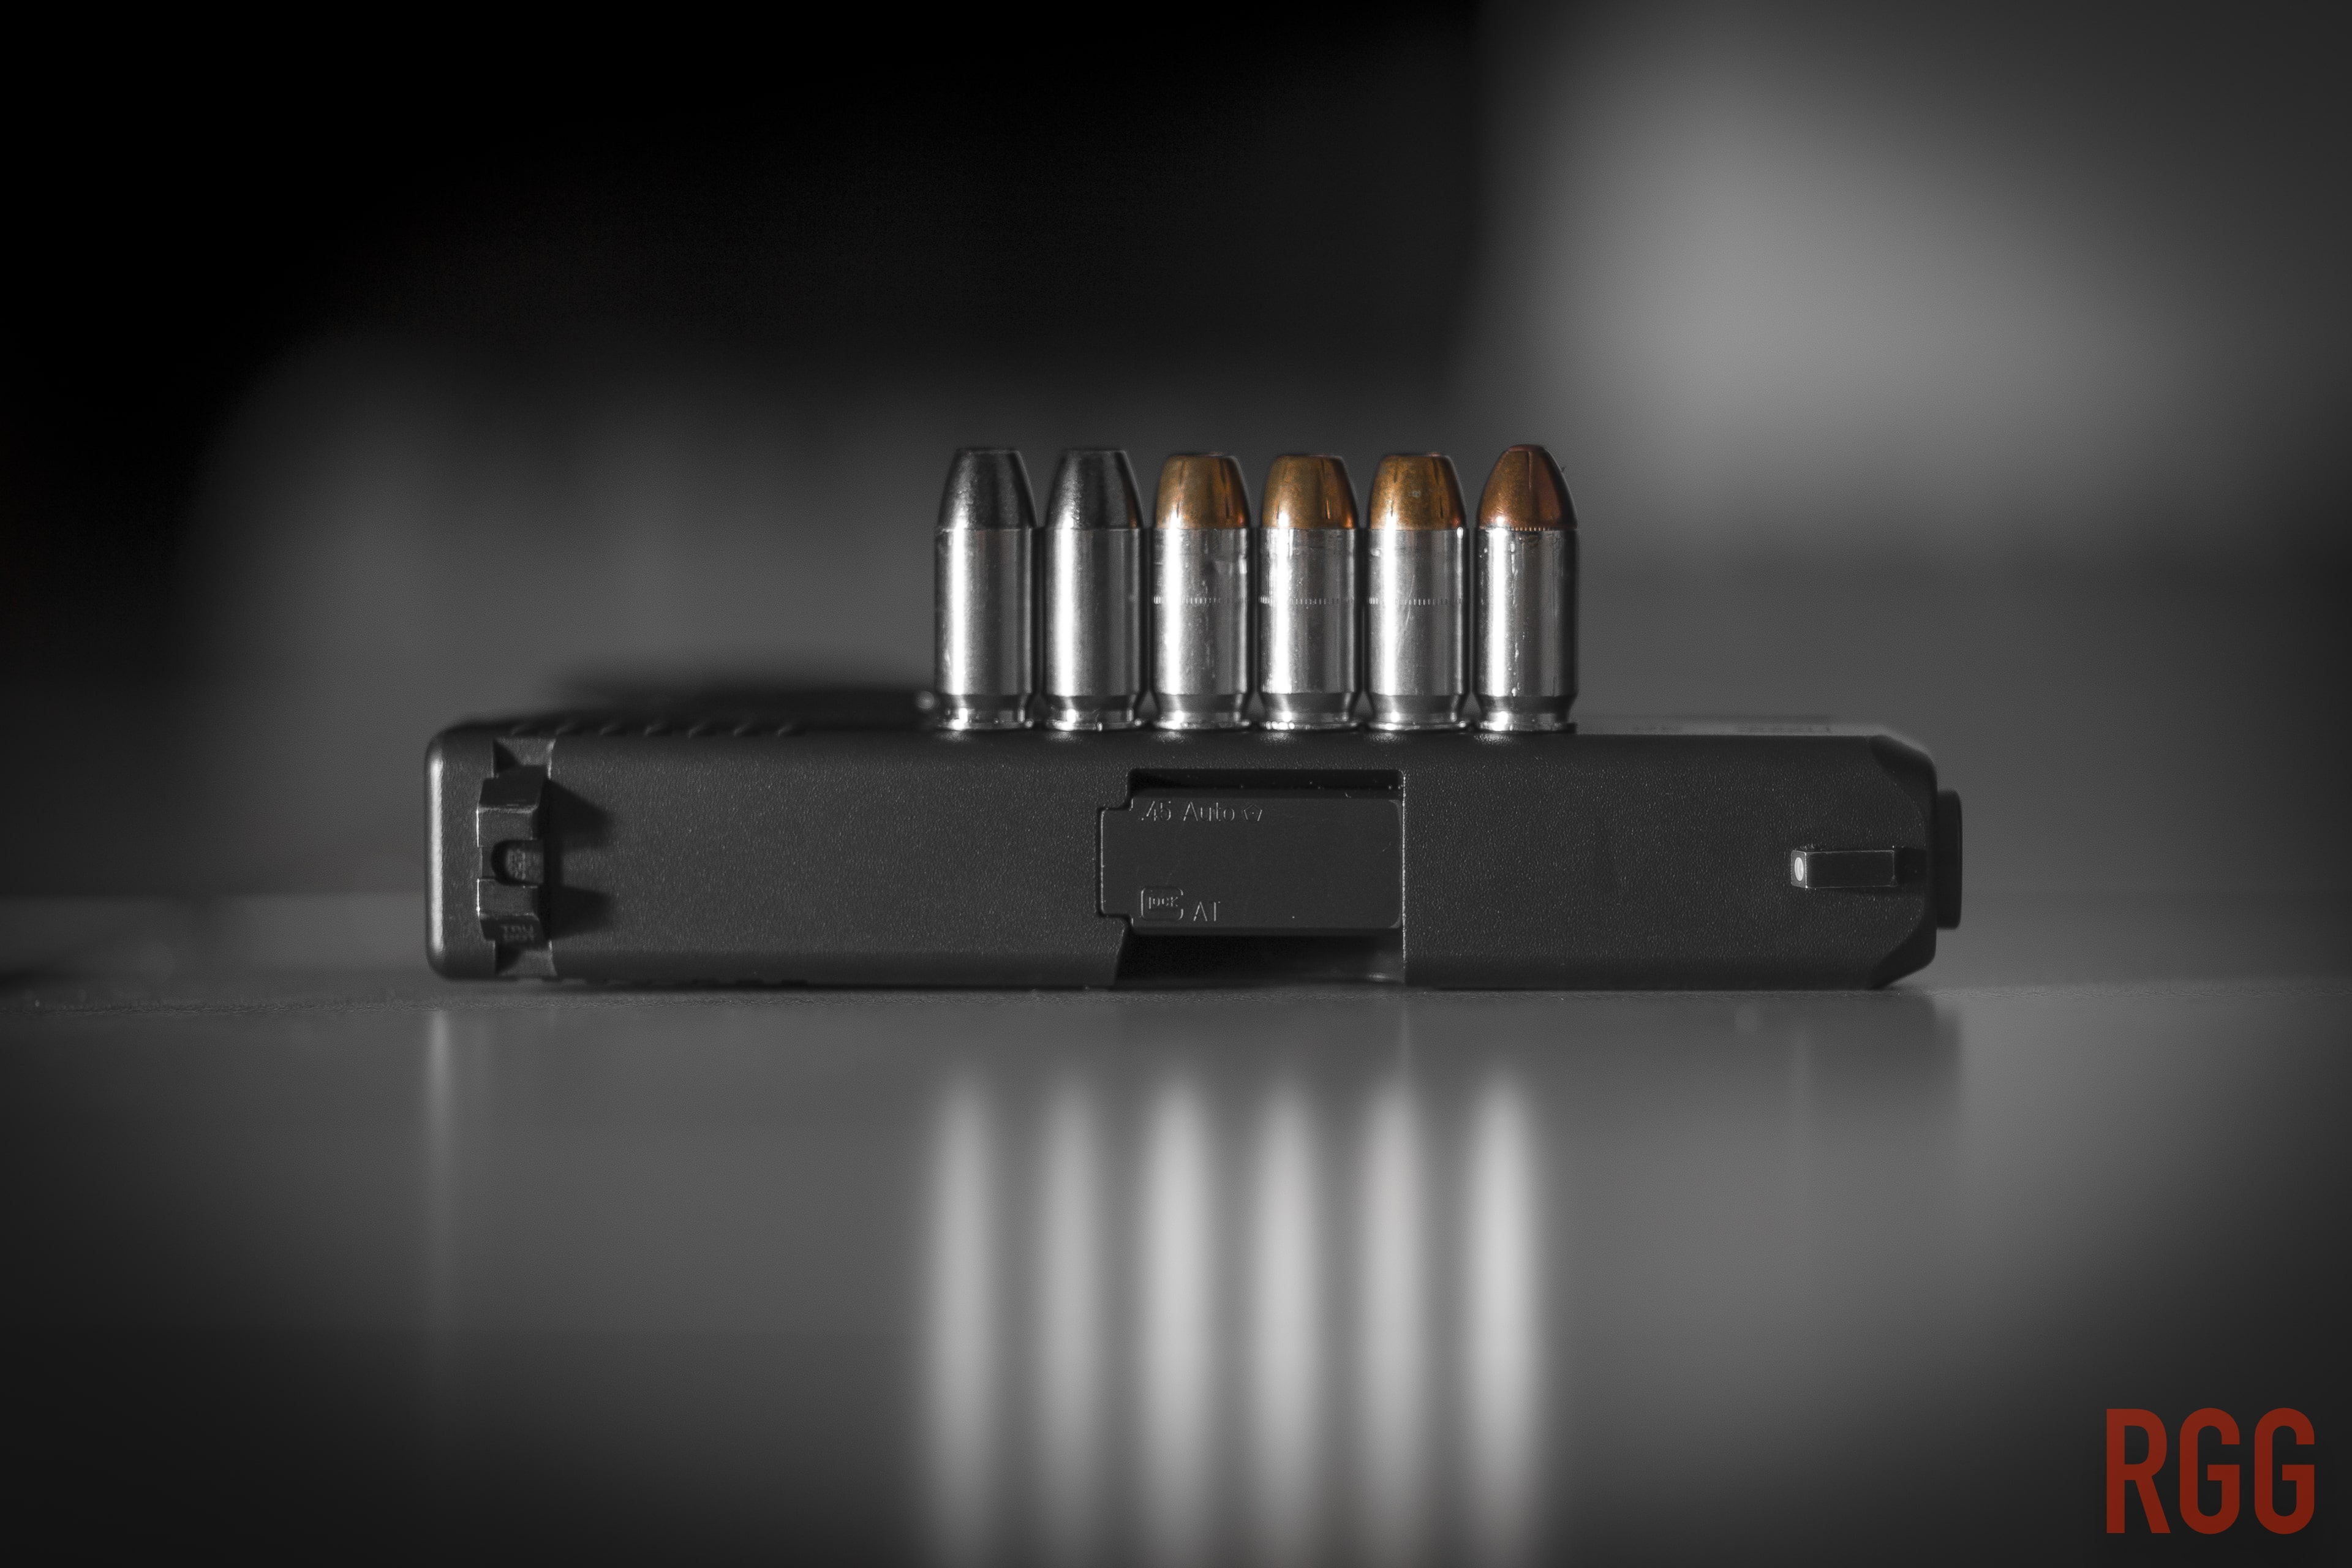 .45 ACP cartridges with a GLOCK 30